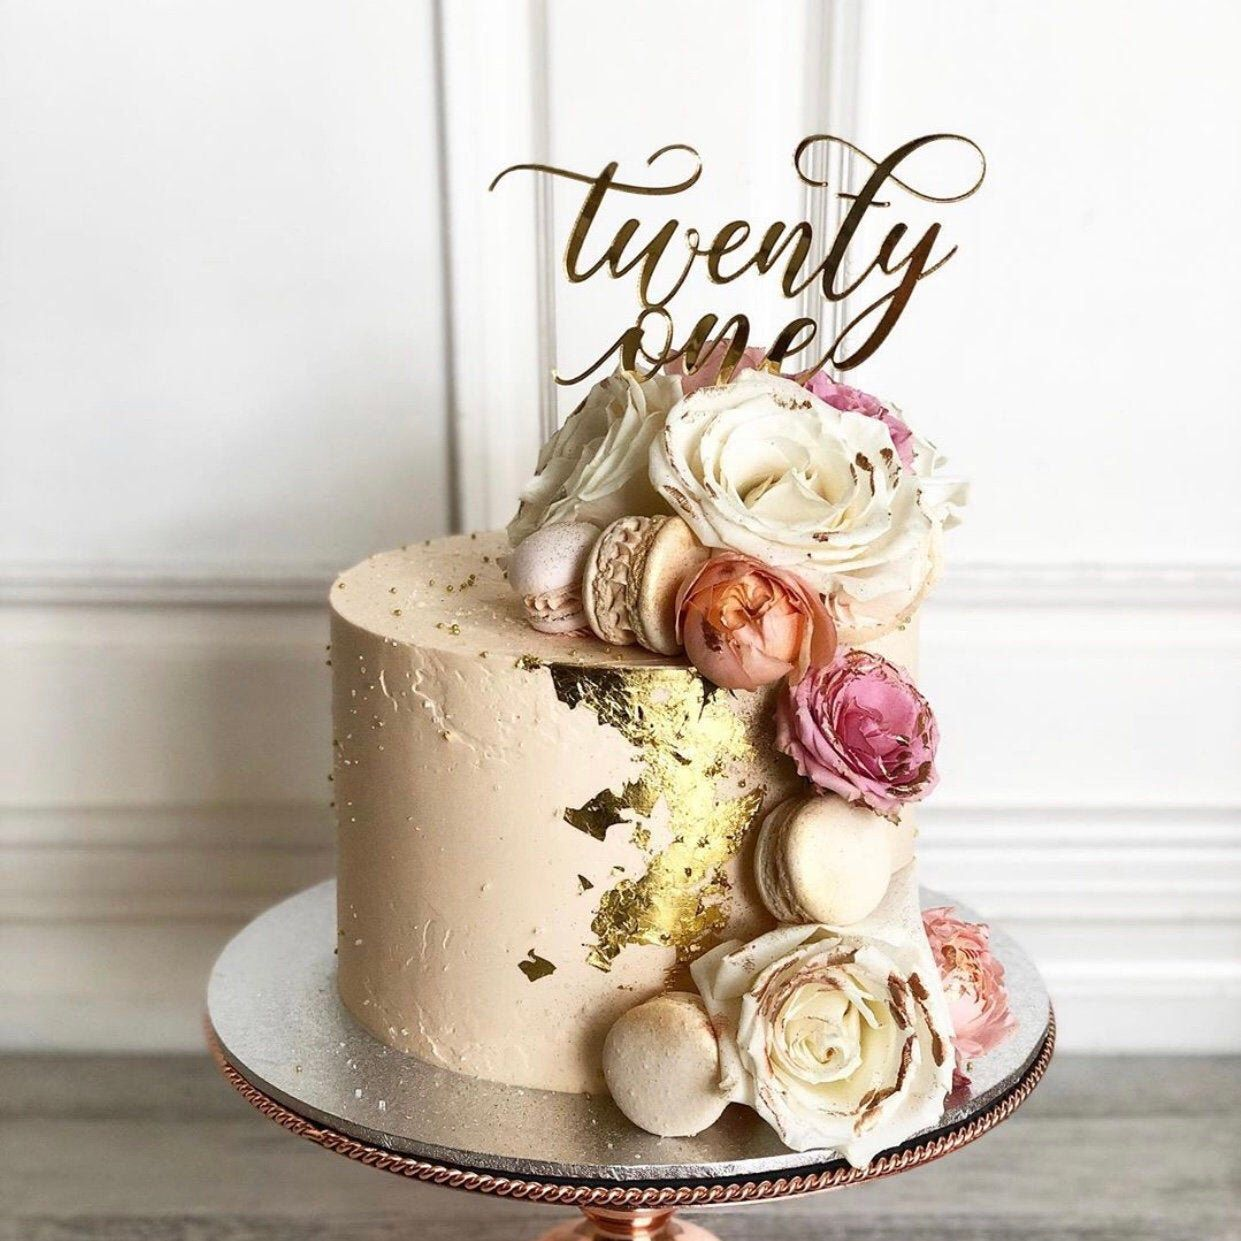 19 21st Cake Toppers Ideas 21st Cake Cake Toppers 21 Cake Topper